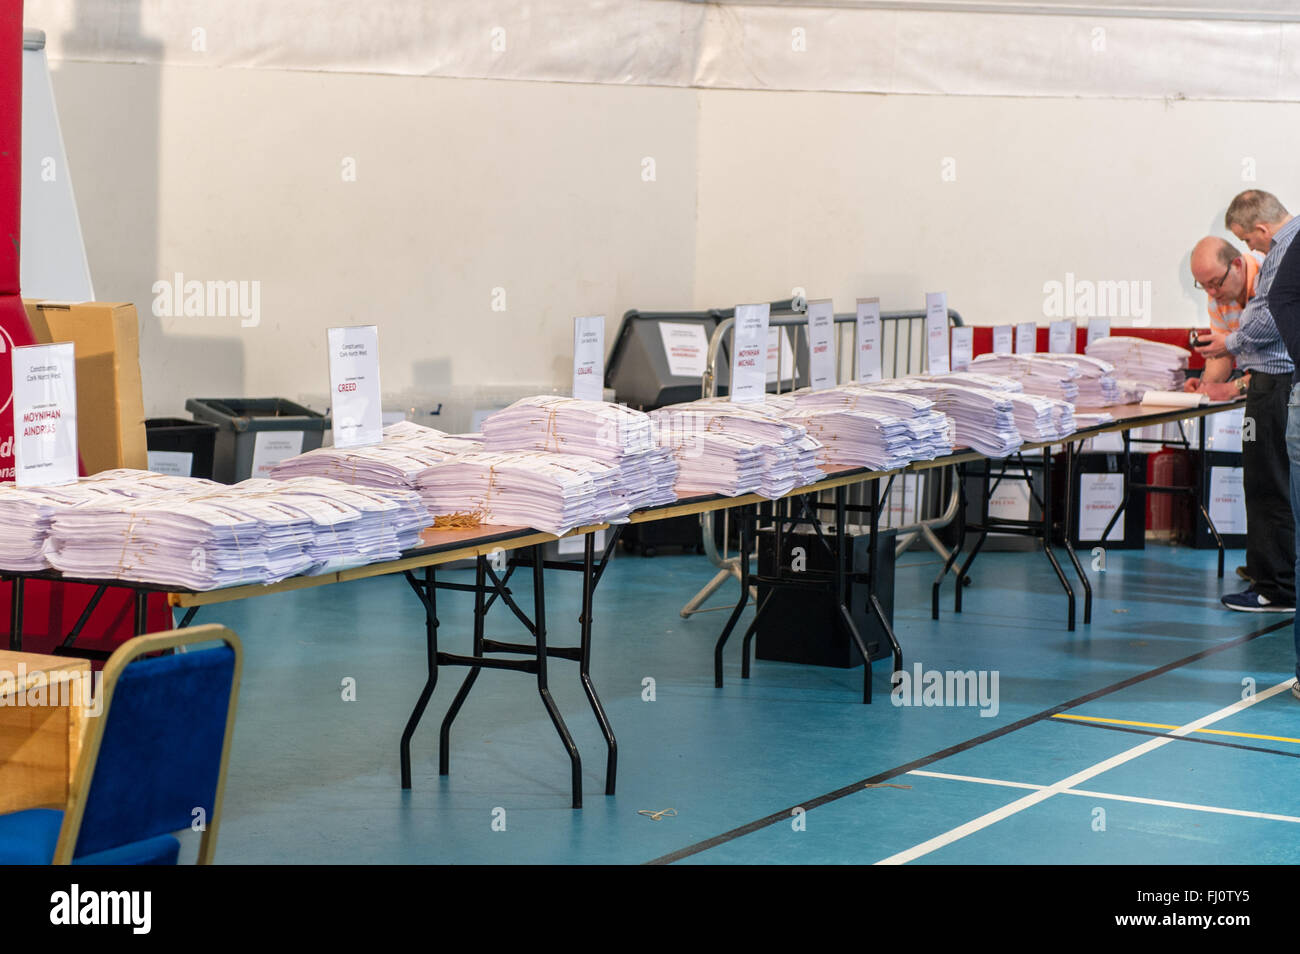 Ballincollig, Ireland. 27th February, 2016. Thousands of voting slips sit on tables waiting for the second count - Stock Image